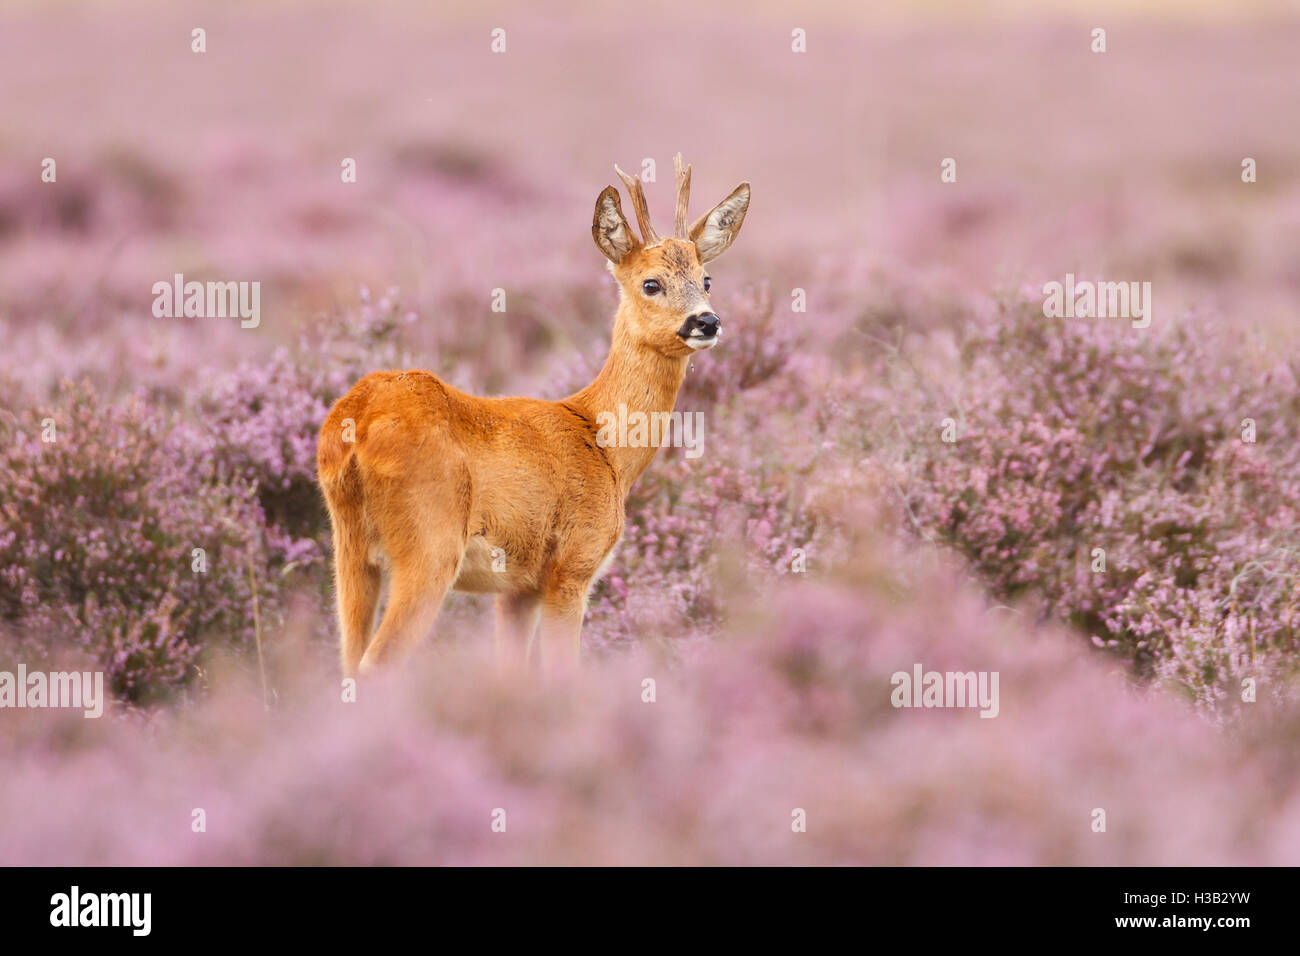 A roe deer in a field of heather - Stock Image